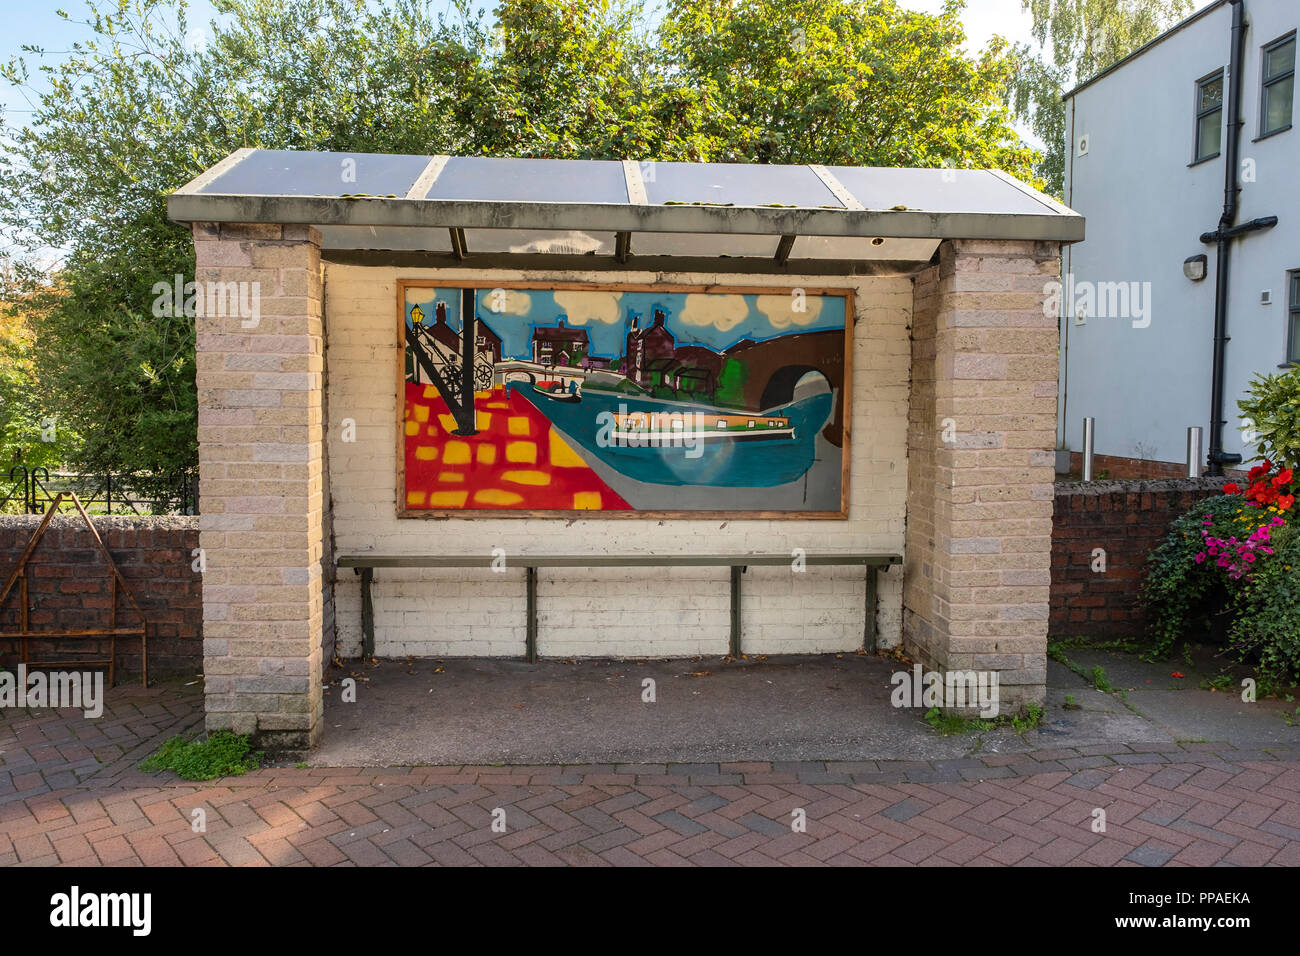 Art inside bus shelter in Middlewich Cheshire UK - Stock Image